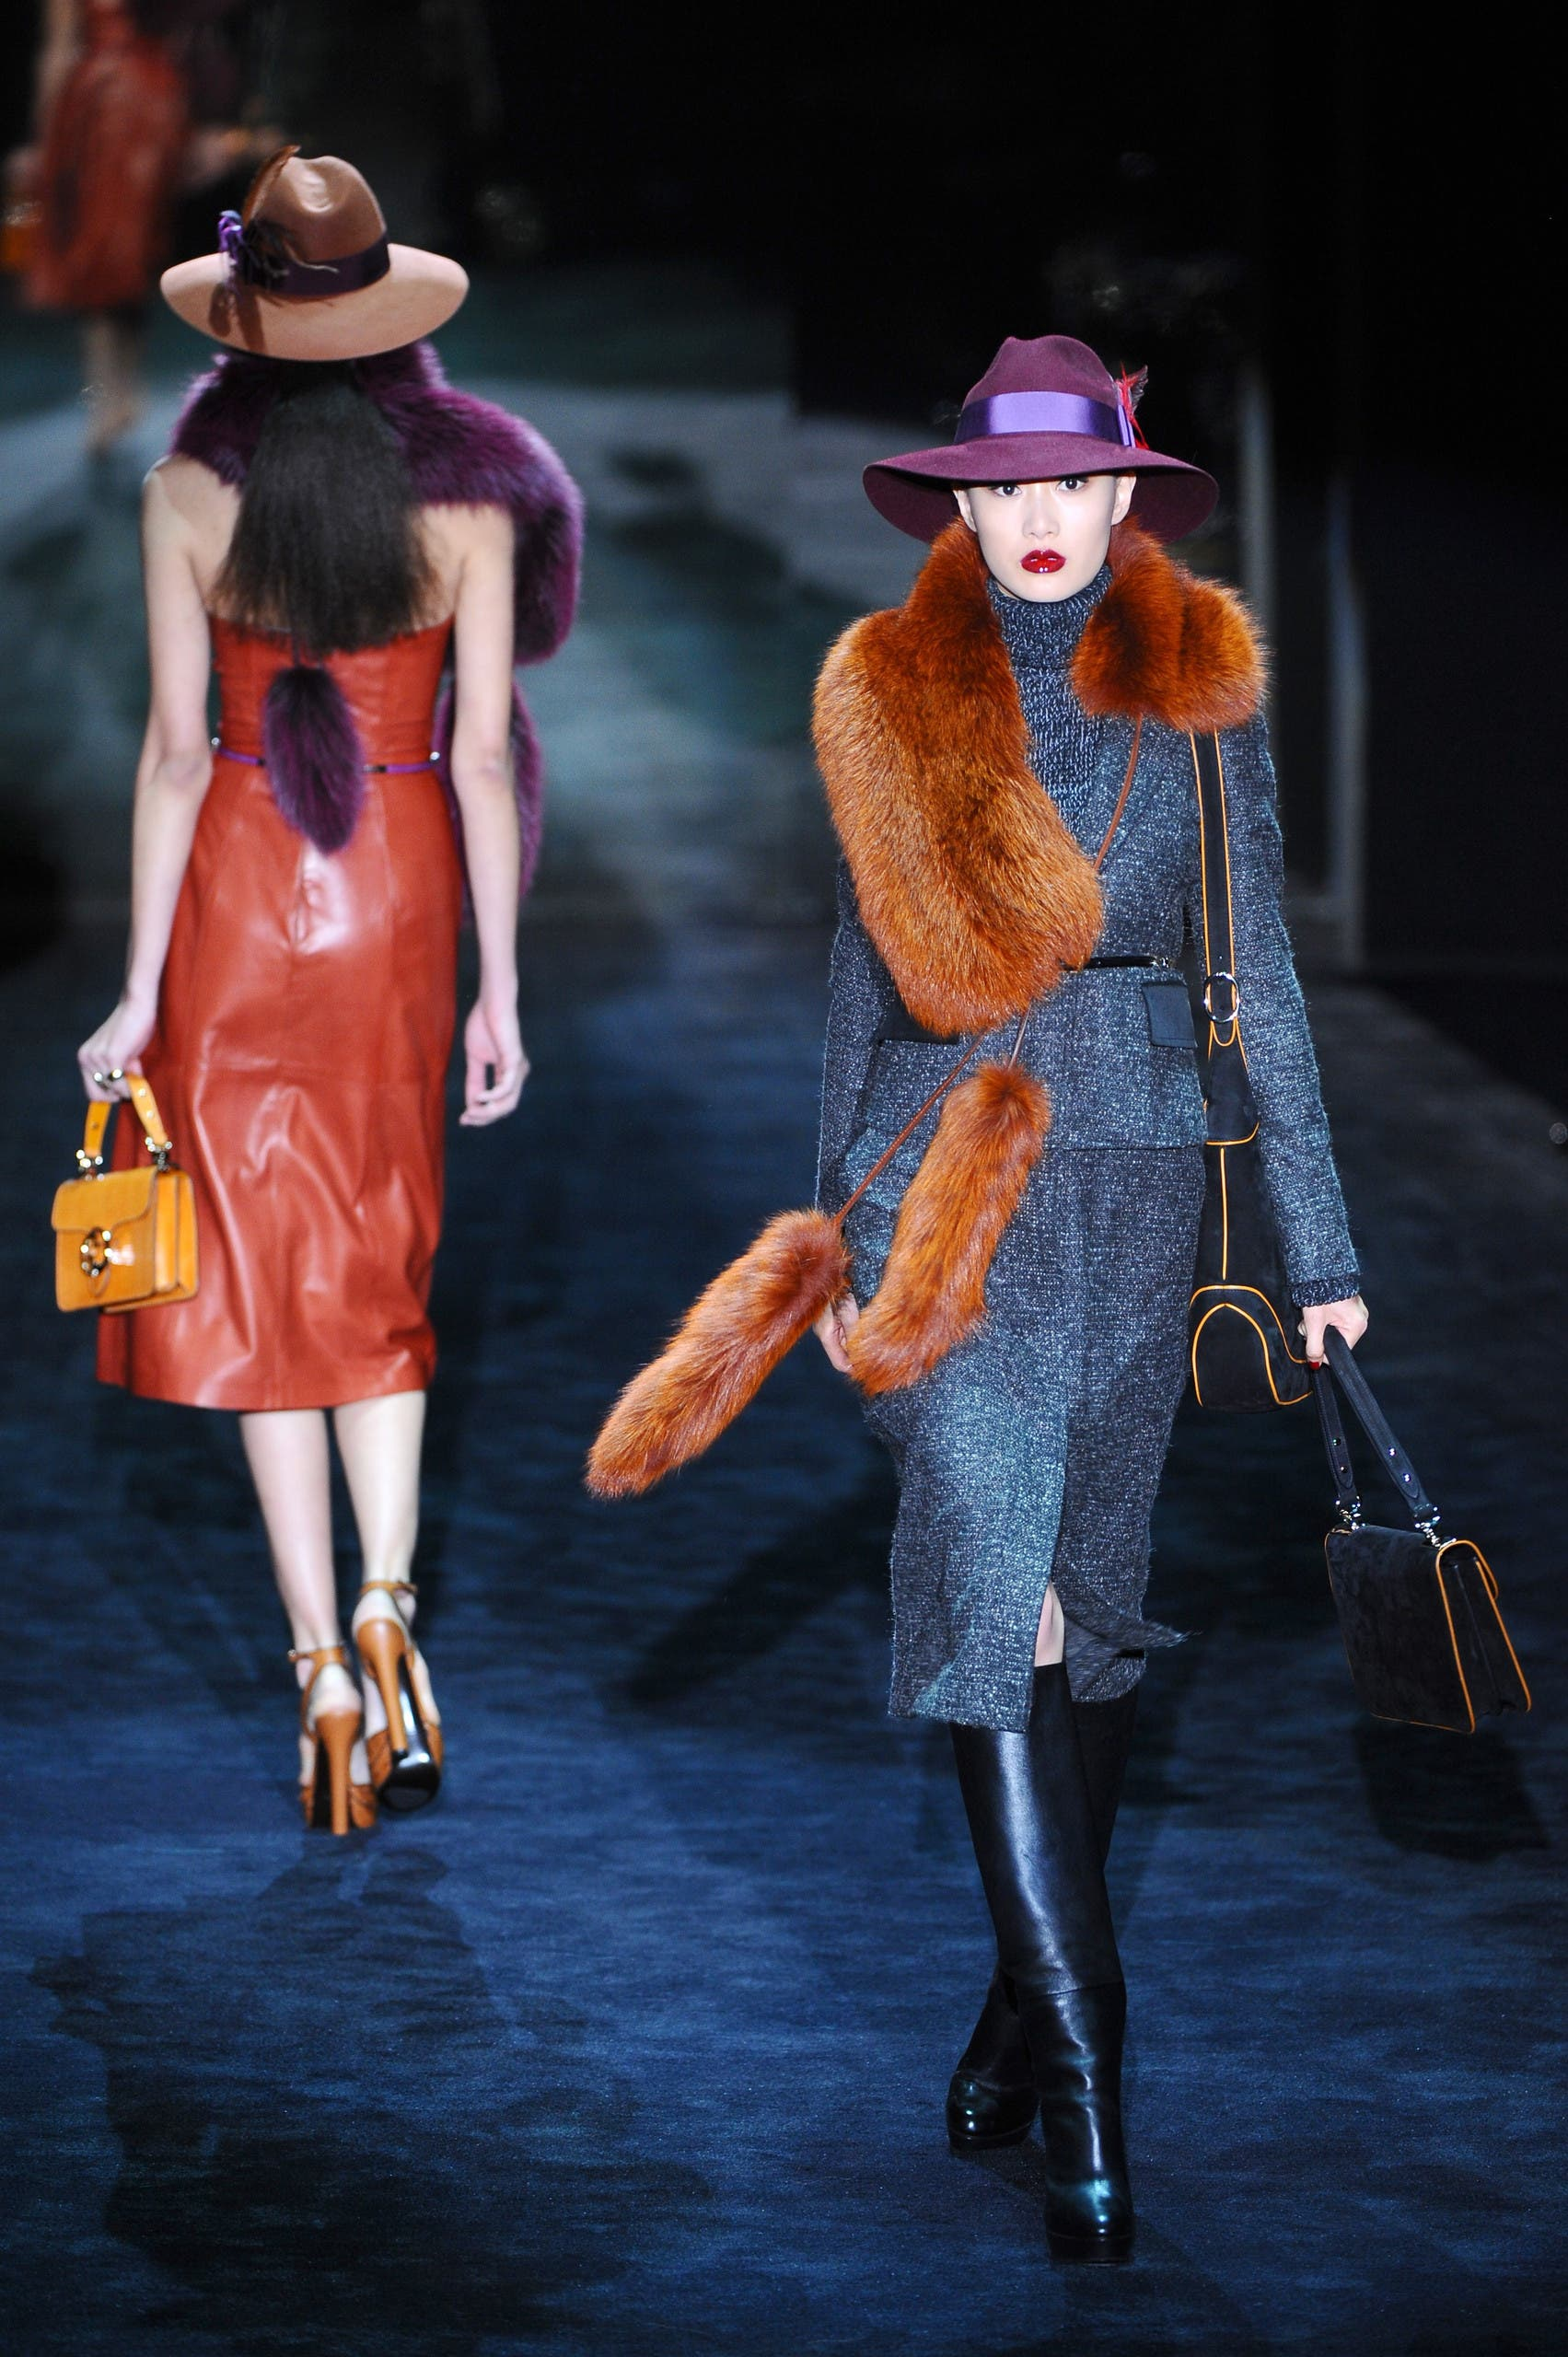 A model displays a creation as part of Gucci Fall-Winter 2011-2012 ready-to-wear collection on February 23, 2011 during the Women's fashion week in Milan. (File photo: AFP)